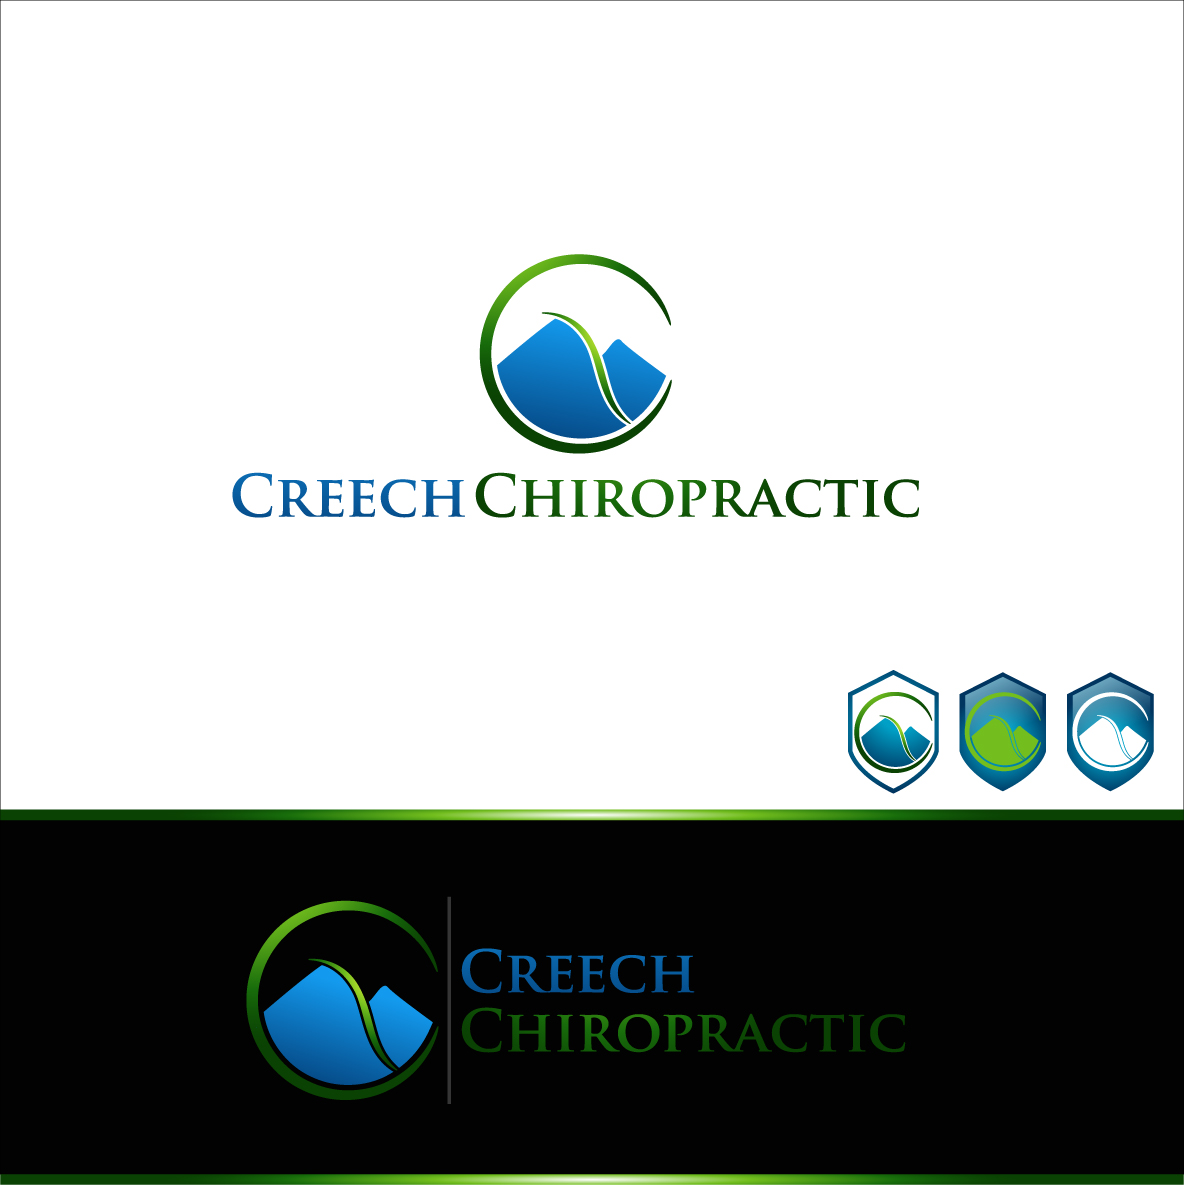 Logo Design by zoiDesign - Entry No. 69 in the Logo Design Contest Imaginative Logo Design for Creech Chiropractic.